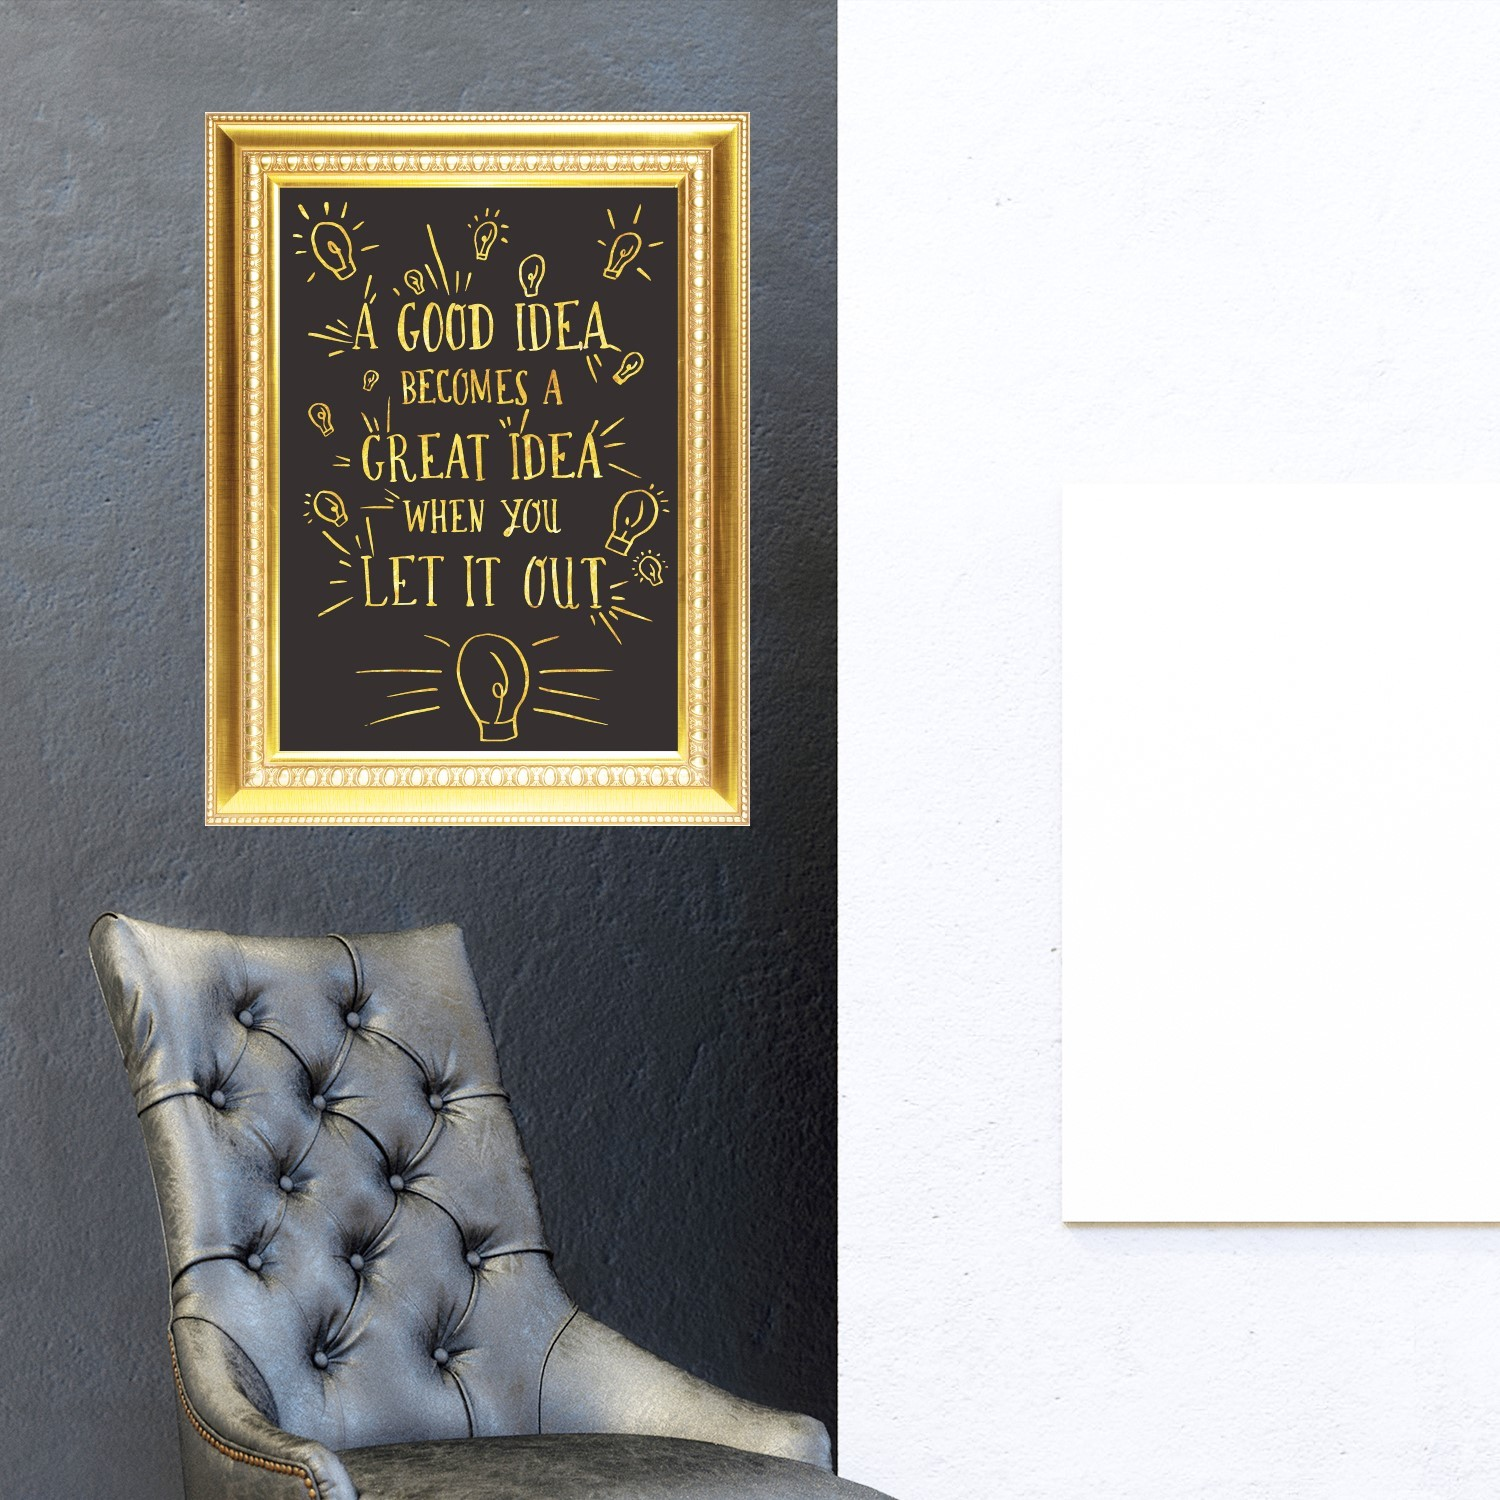 GOLD FRAME STICKER GREAT IDEA QUOTE (end 8/13/2020 11:25 PM)